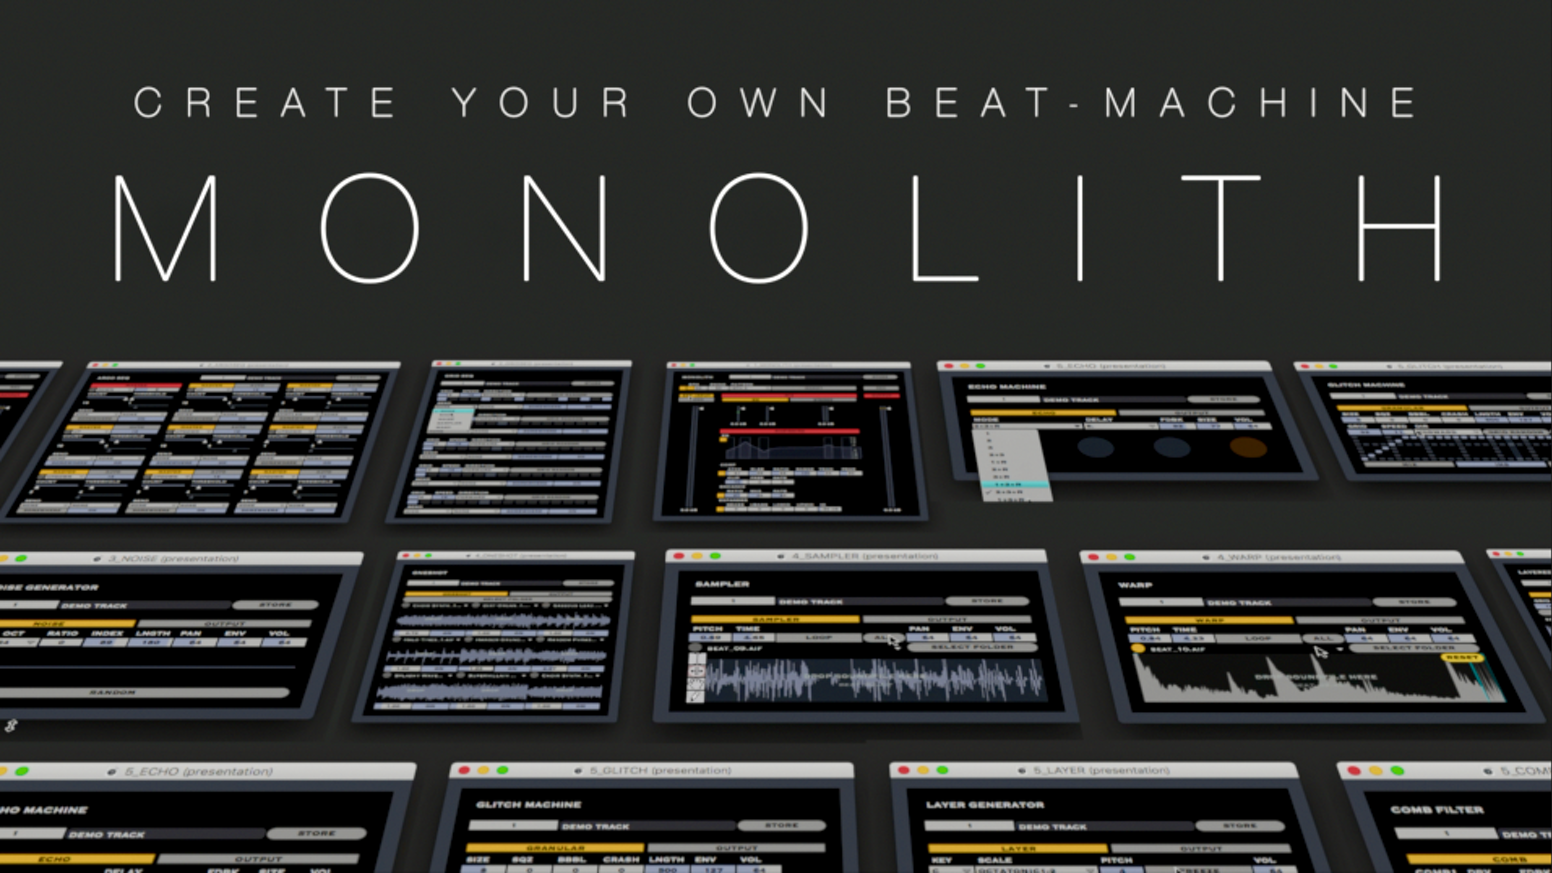 monolith create your own beat machine by noel kit kickstarter